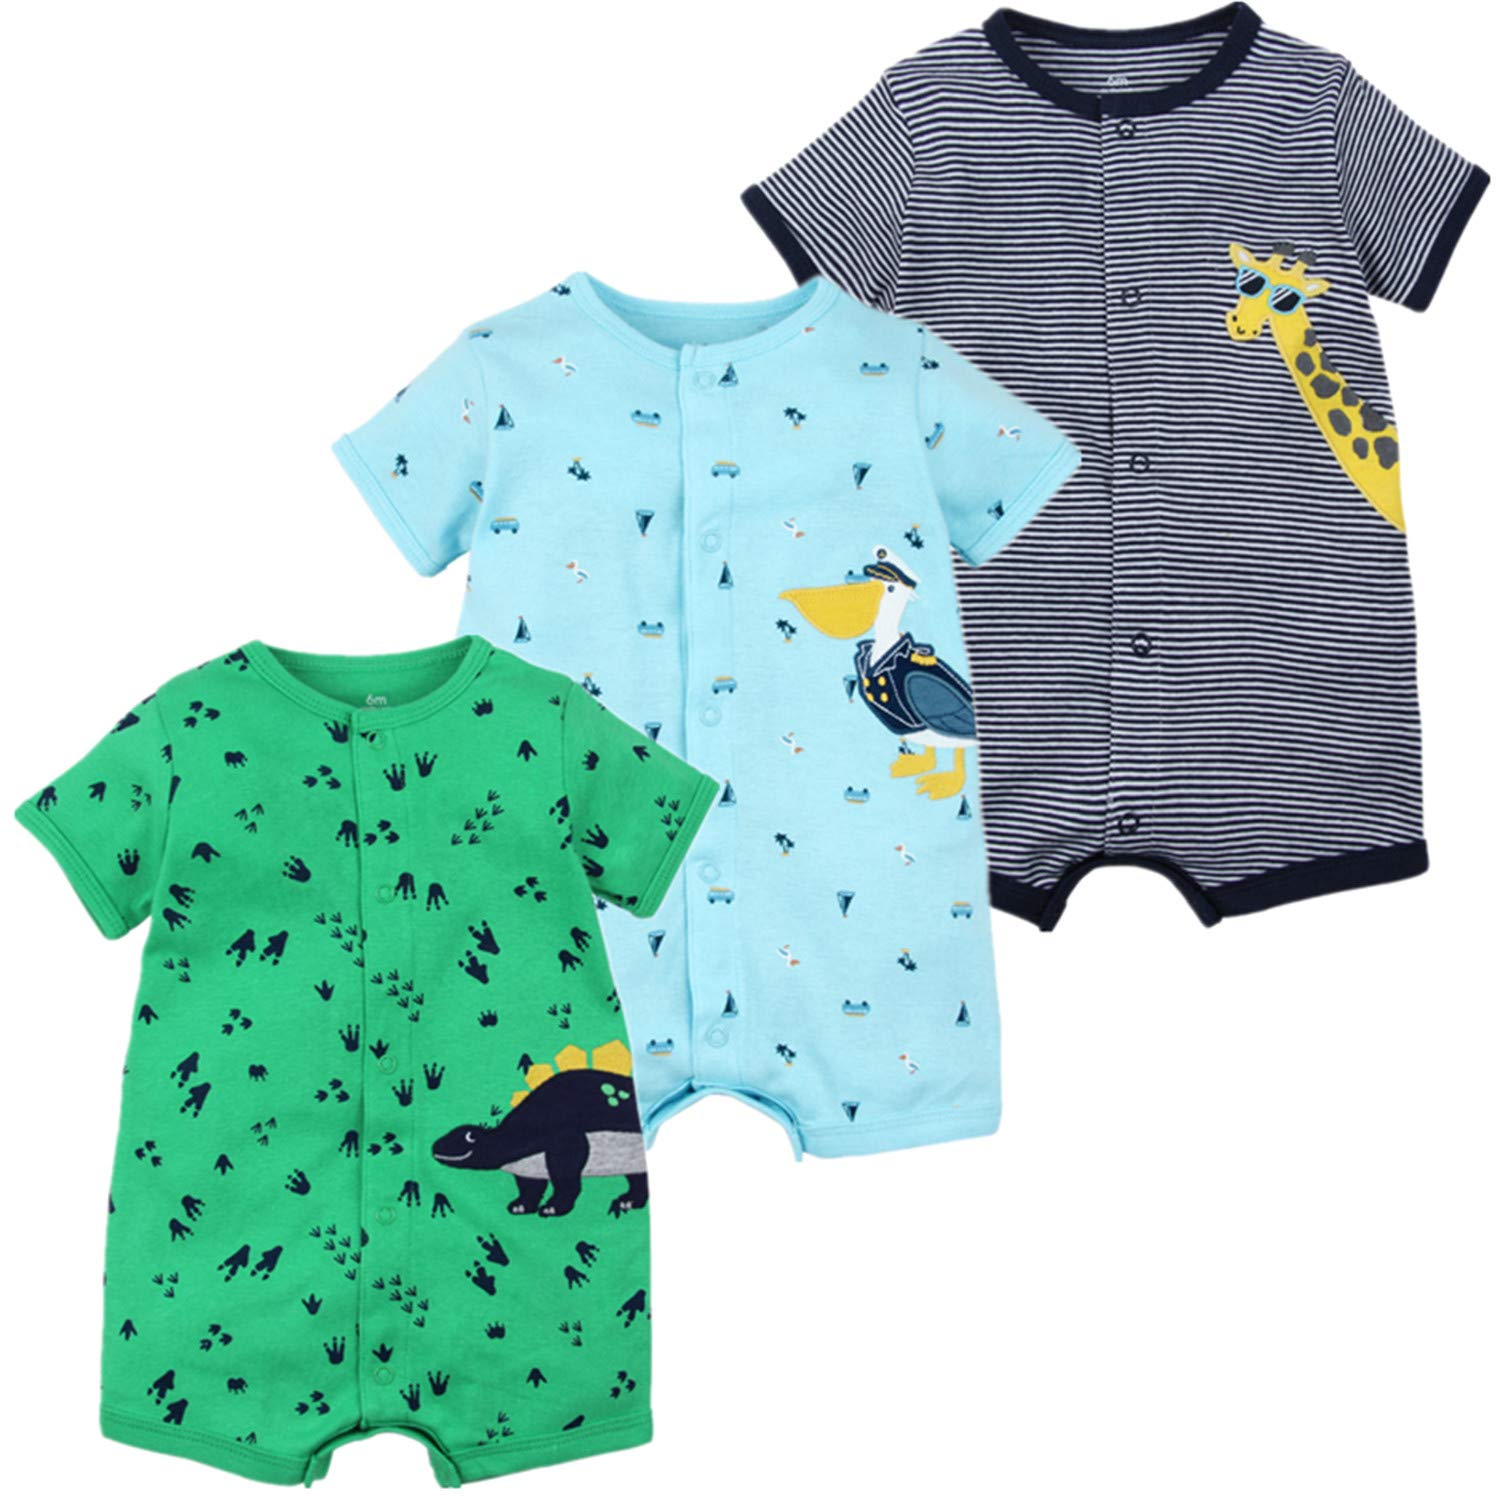 Night Owl Romper Baby Boys Girls Bodysuit One-Piece Jumpsuit Outfits for Baby Black